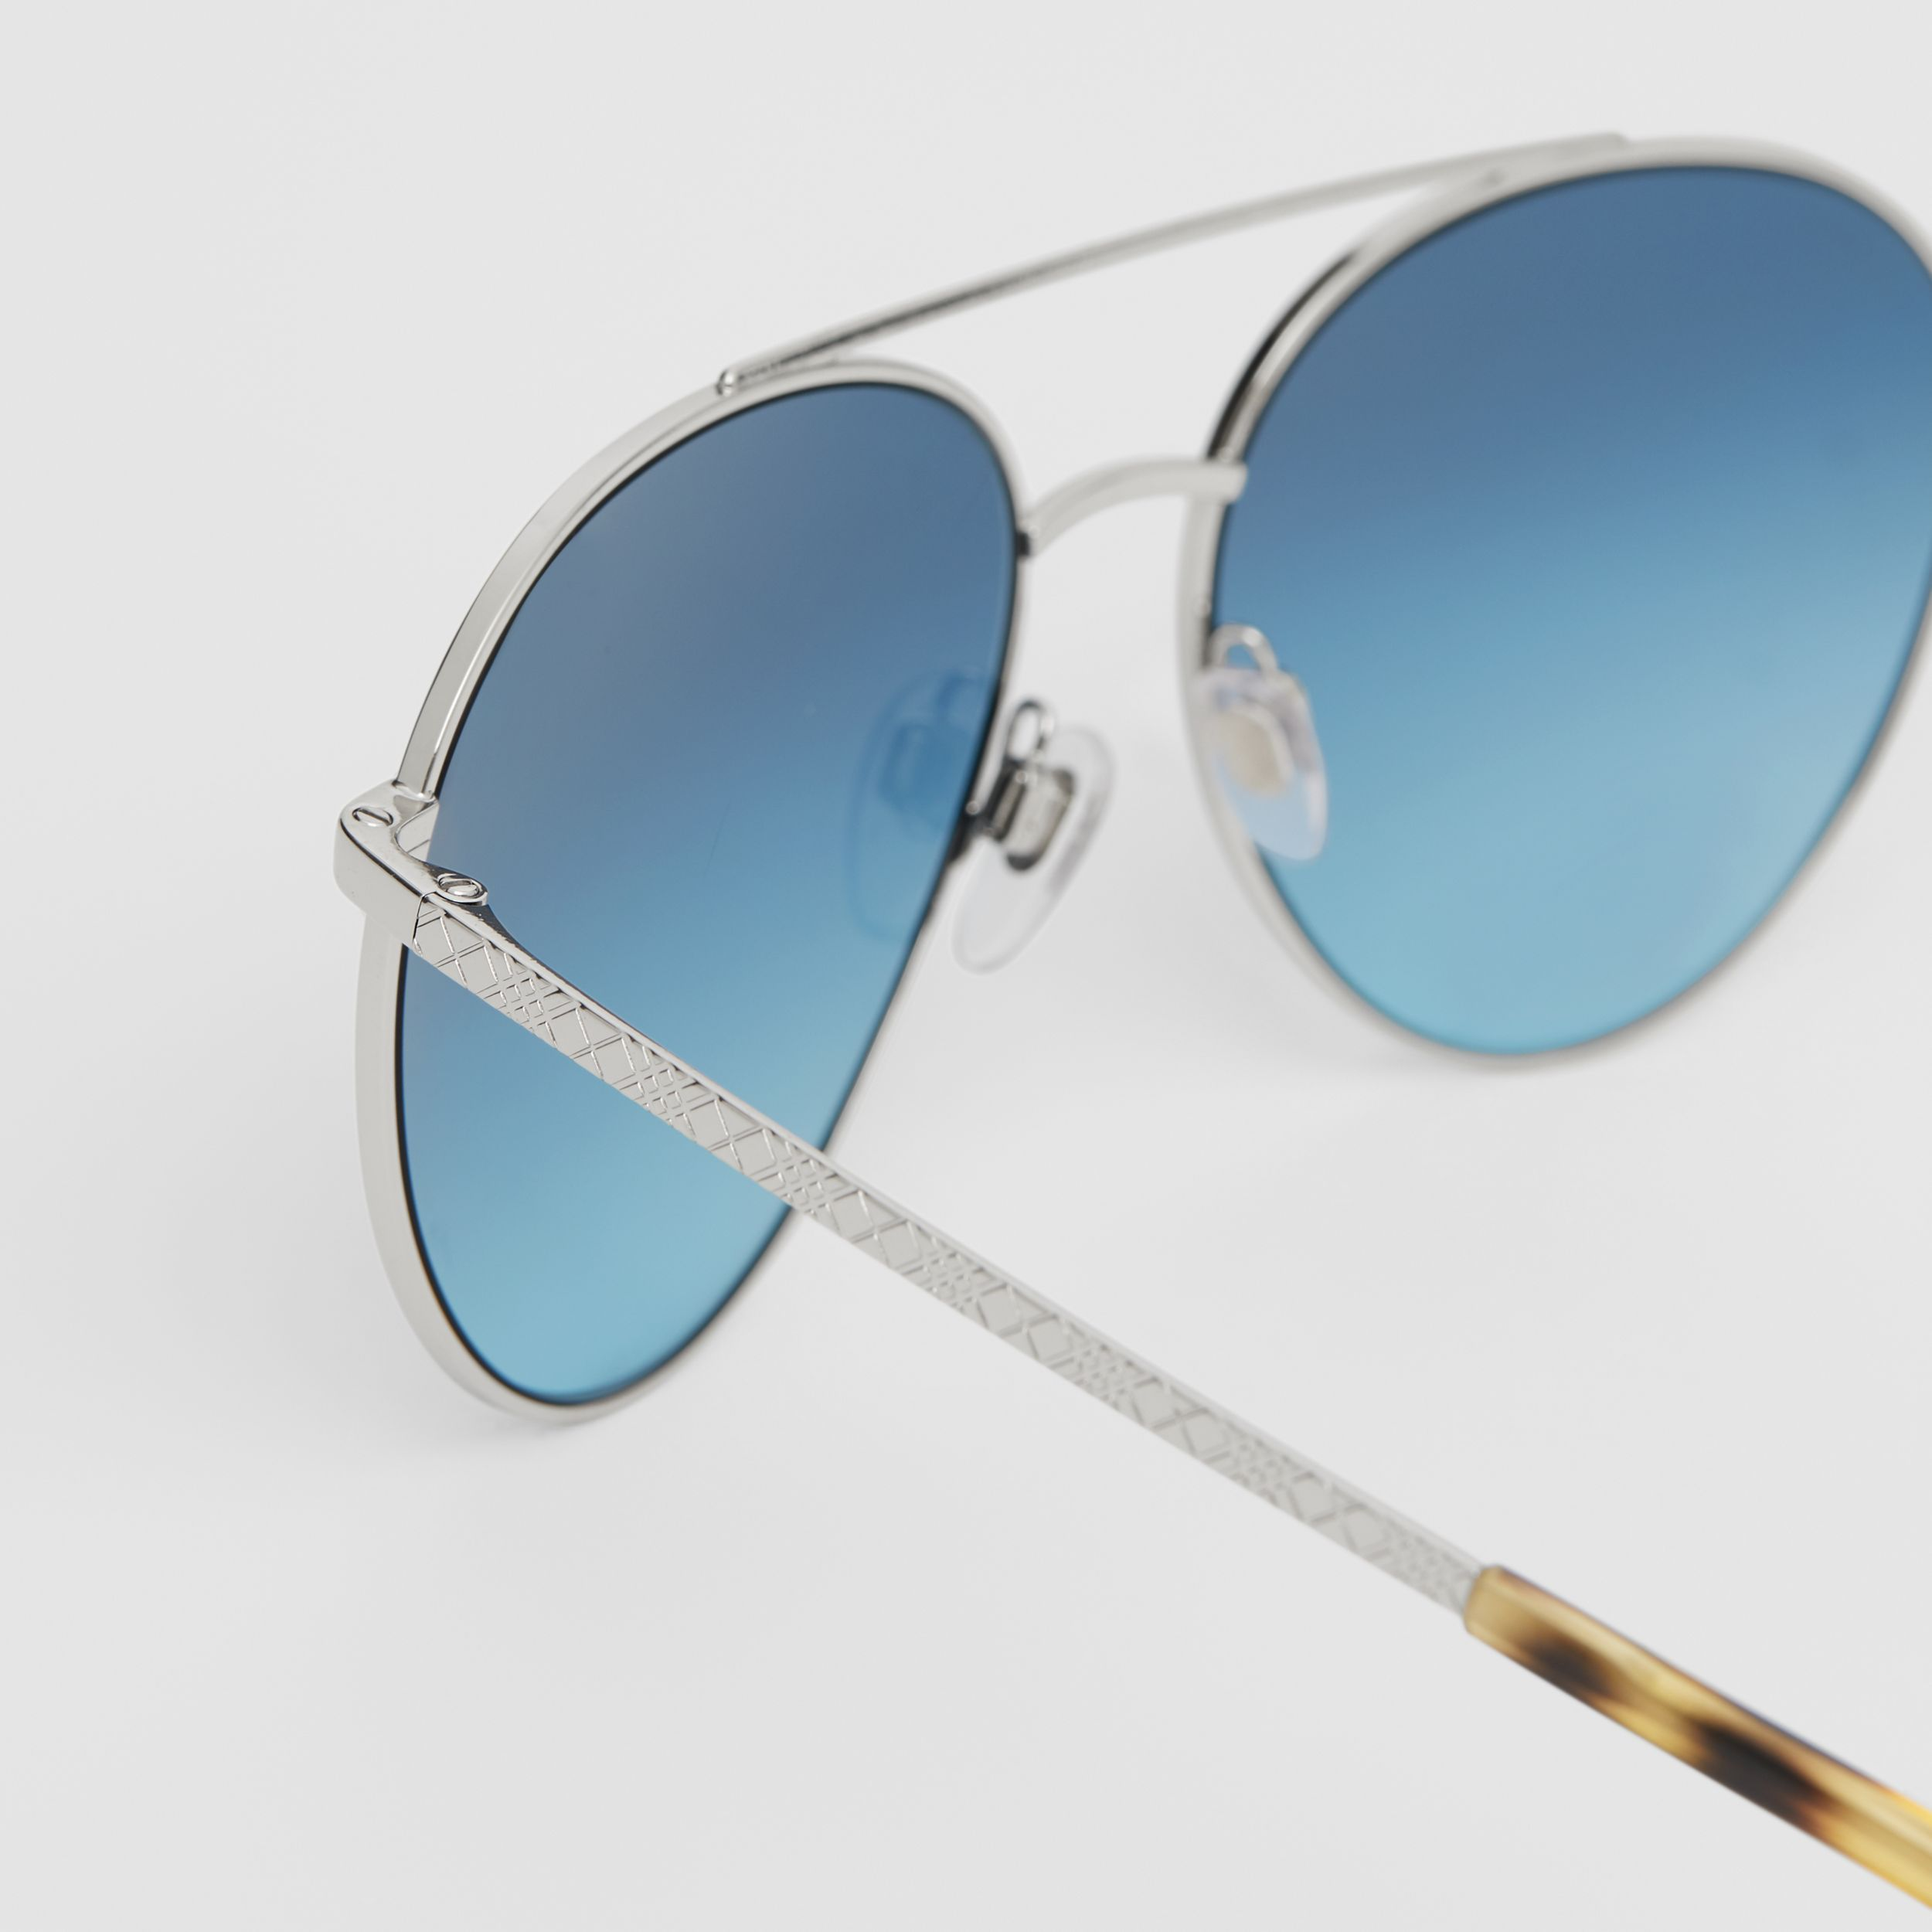 Pilot Sunglasses in Pale Blue - Women | Burberry United States - 2